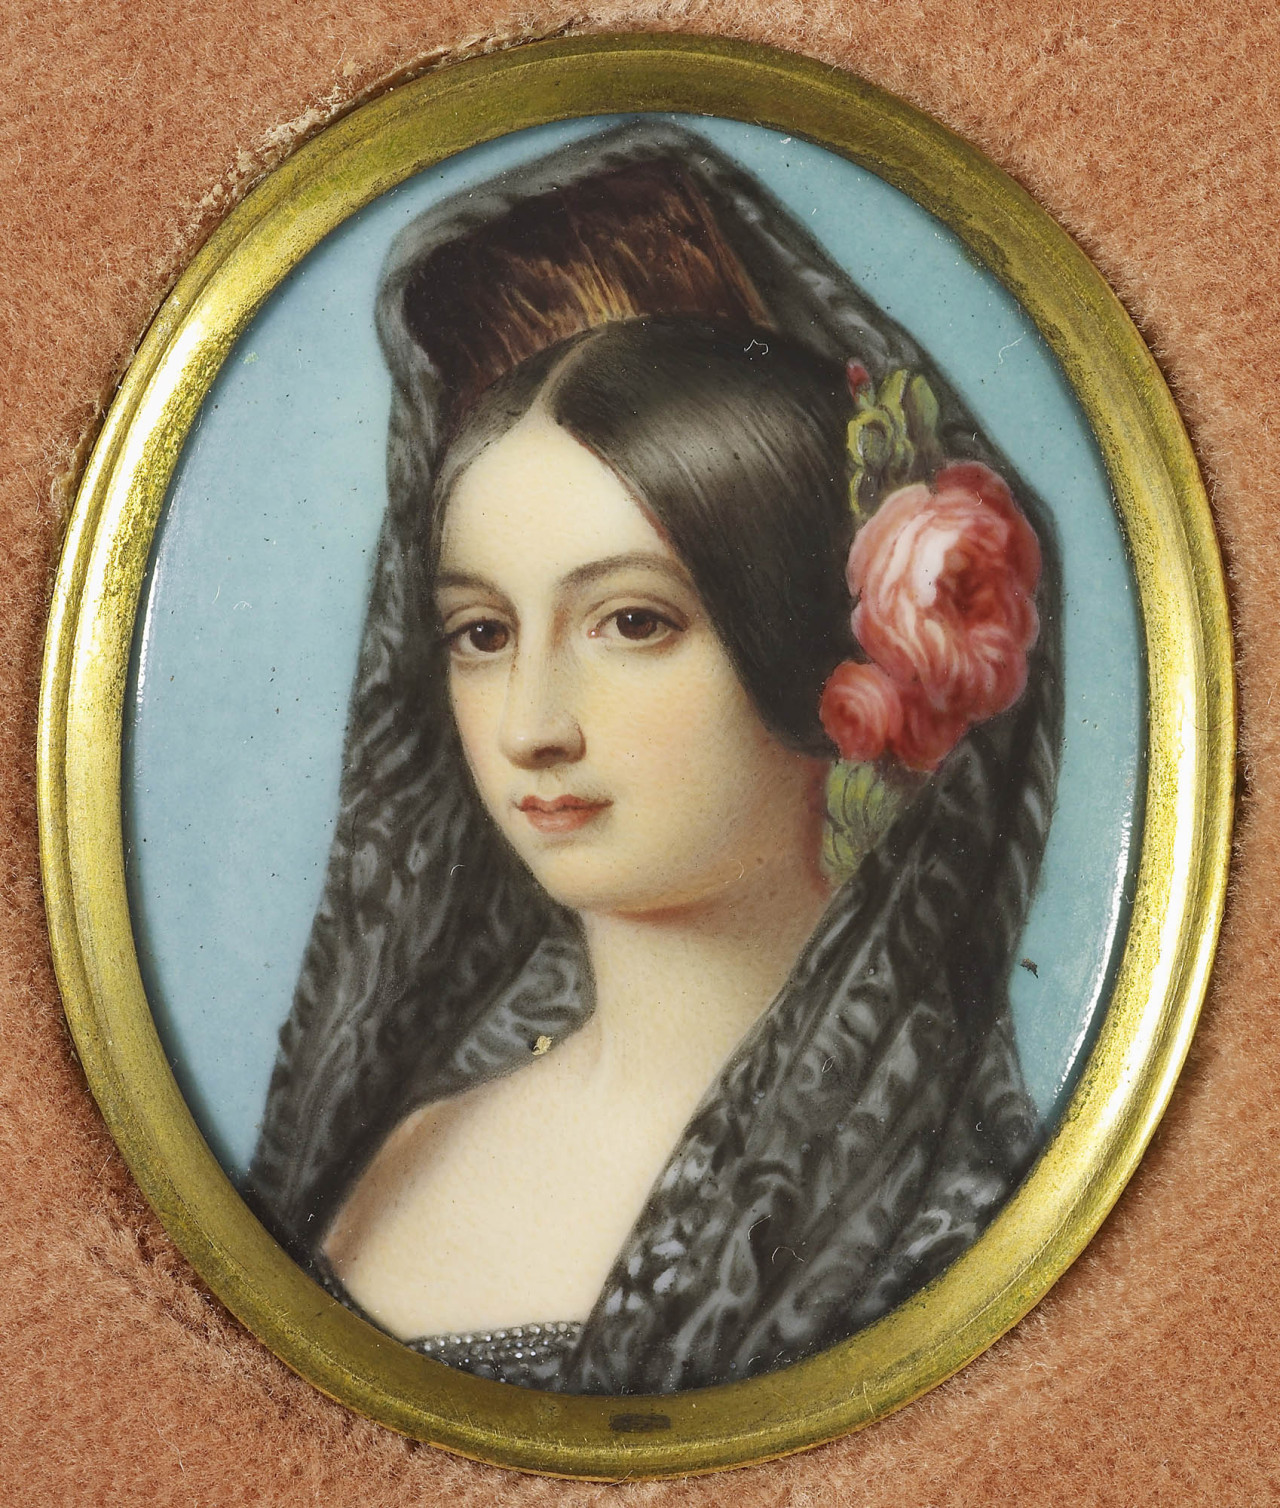 Miniature of the Infanta Luisa Fernanda (1832-1897), Duchess of Montpensier in the British Royal Collection. Leopold I, King of the Belgians, reported to Queen Victoria in 1846 that: 'The Infanta is evidently good looking … Her eyes seem … very lovely and she has fine teeth and hair. She is also very graceful … rather tall already and likely still to grow' (RA VIC/Y 73/14). She had matured by the time Queen Victoria saw her during her visit to England from 14 June to 2 July 1852: 'She is very Spanish looking, and there is much charm & beauty about her face, & manner – tho' she is a good deal altered & looks older than she is. She is very amiable & gentle & ready to do anything & pleased with everything' (RA VIC/Y 97/20). The Queen was delighted when she wore a mantilla, as in the present enamel: 'The Montpensiers came to see us … Fernanda looked very handsome in a Spanish Mantilla w h. she put on on purpose for me' (RA VIC/Y 97/21). Luisa Fernanda, daughter of Fernando VII of Spain, and of Maria Cristina of the Two-Sicilies, daughter of King Francis I of the Two Sicilies, married in 1846 Antoine, duc de Montpensier, fifth son of Louis-Philippe, King of the French. They had four sons and five daughters. Signed, dated and inscribed on the counter-enamel in black paint: Infanta Louisa Ferdinanda / Duchess of Montpensier / Simpson after F. Winterhalter / 1849